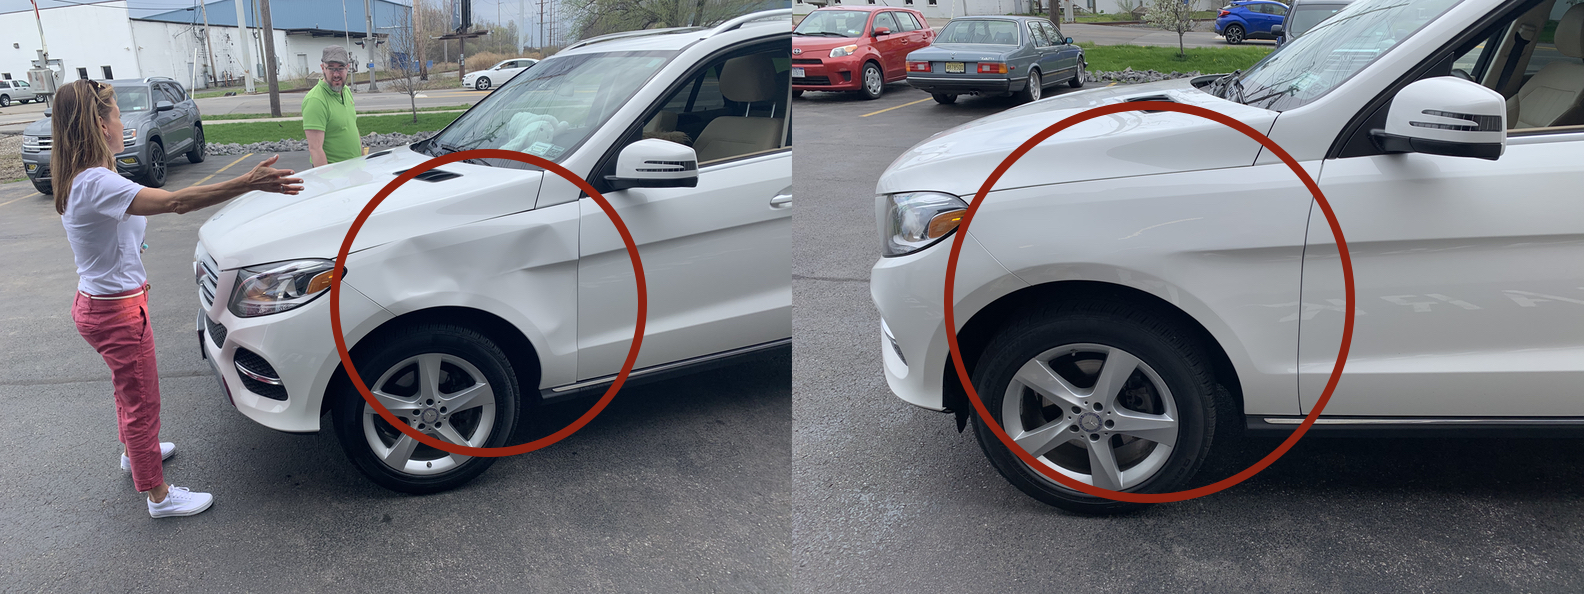 BEFORE & AFTER: EXTREME DAMAGE TO FENDER, BODY LINES WITH DENTS & CREASES; DAMAGE REMOVED & REPAIRED WITH PAINTLESS DENT REPAIR & GLUE PULLING PDR BY THE DENT GUY.